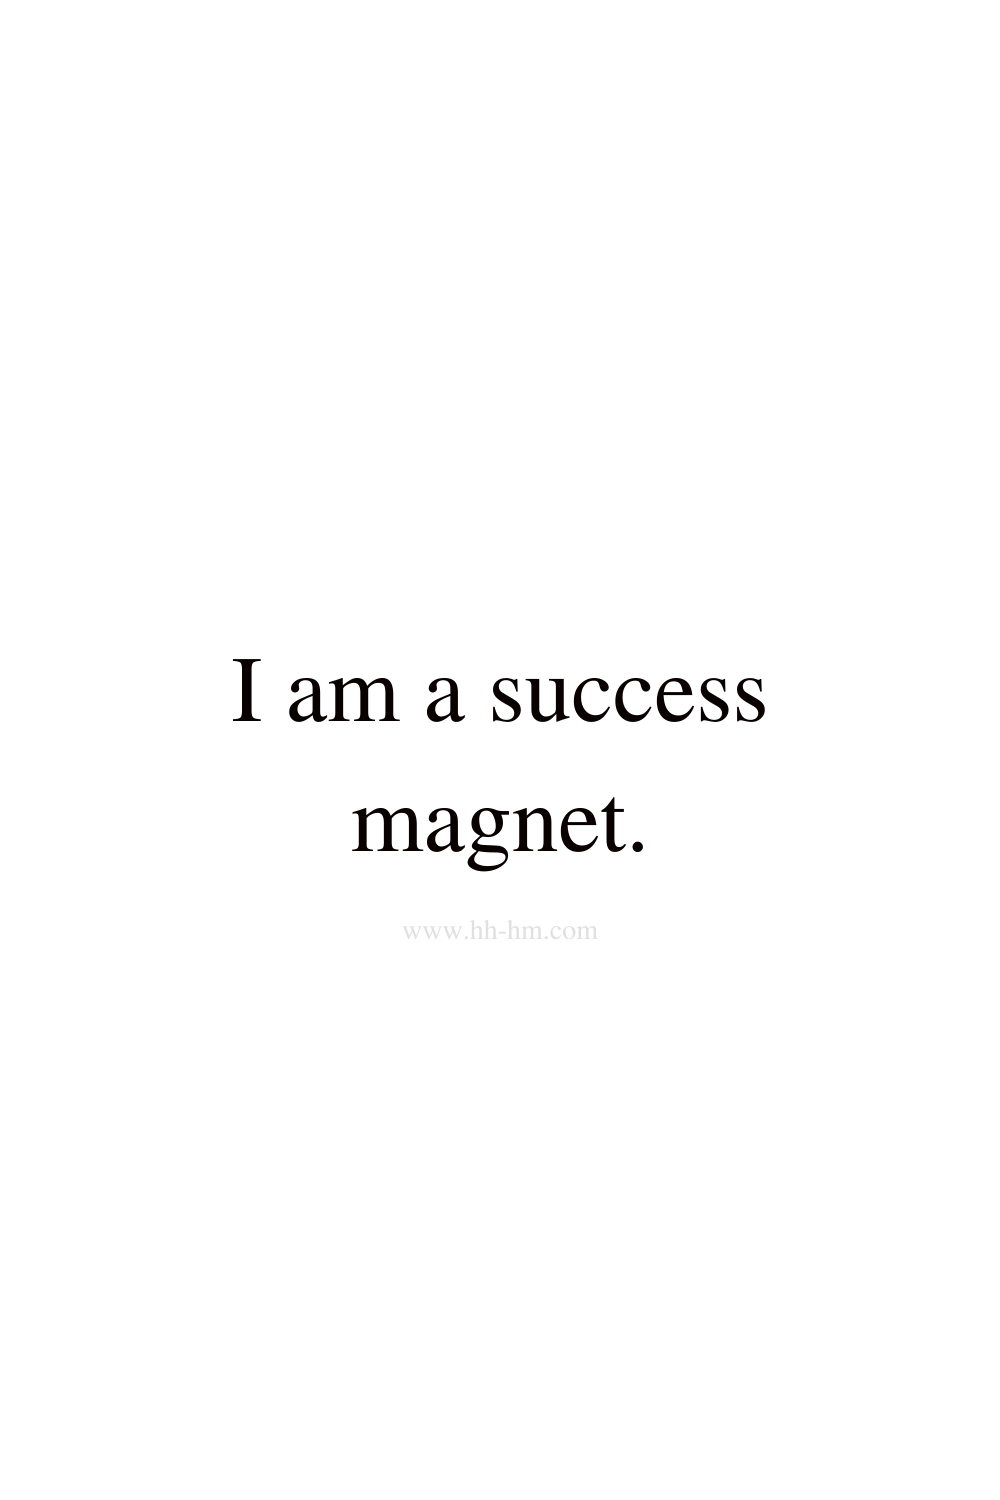 I am a success magnet - morning affirmations for success